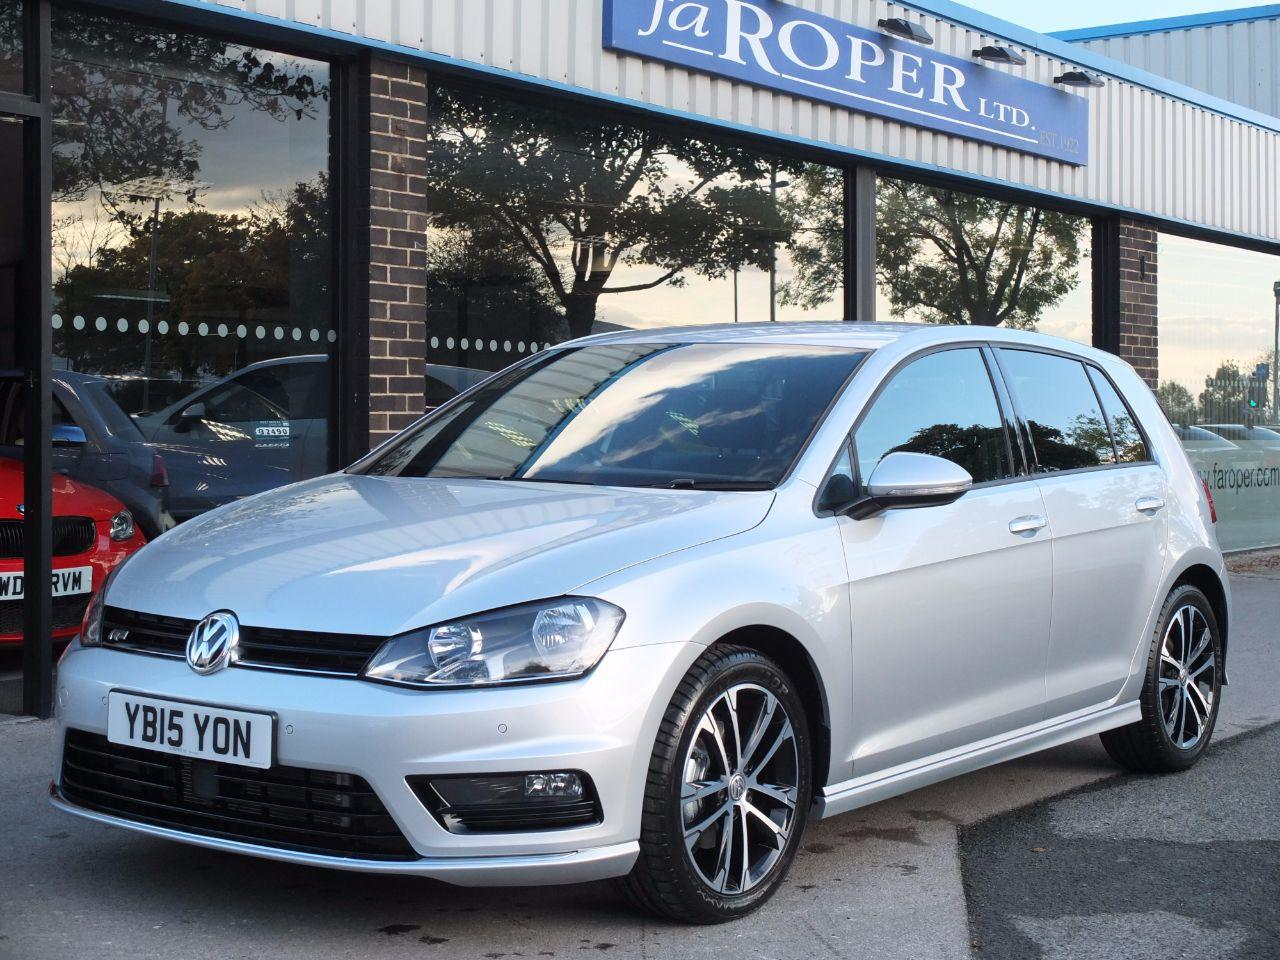 Volkswagen Golf 2.0 TDI R-Line 5 door DSG 150ps Hatchback Diesel Reflex Silver MetallicVolkswagen Golf 2.0 TDI R-Line 5 door DSG 150ps Hatchback Diesel Reflex Silver Metallic at fa Roper Ltd Bradford